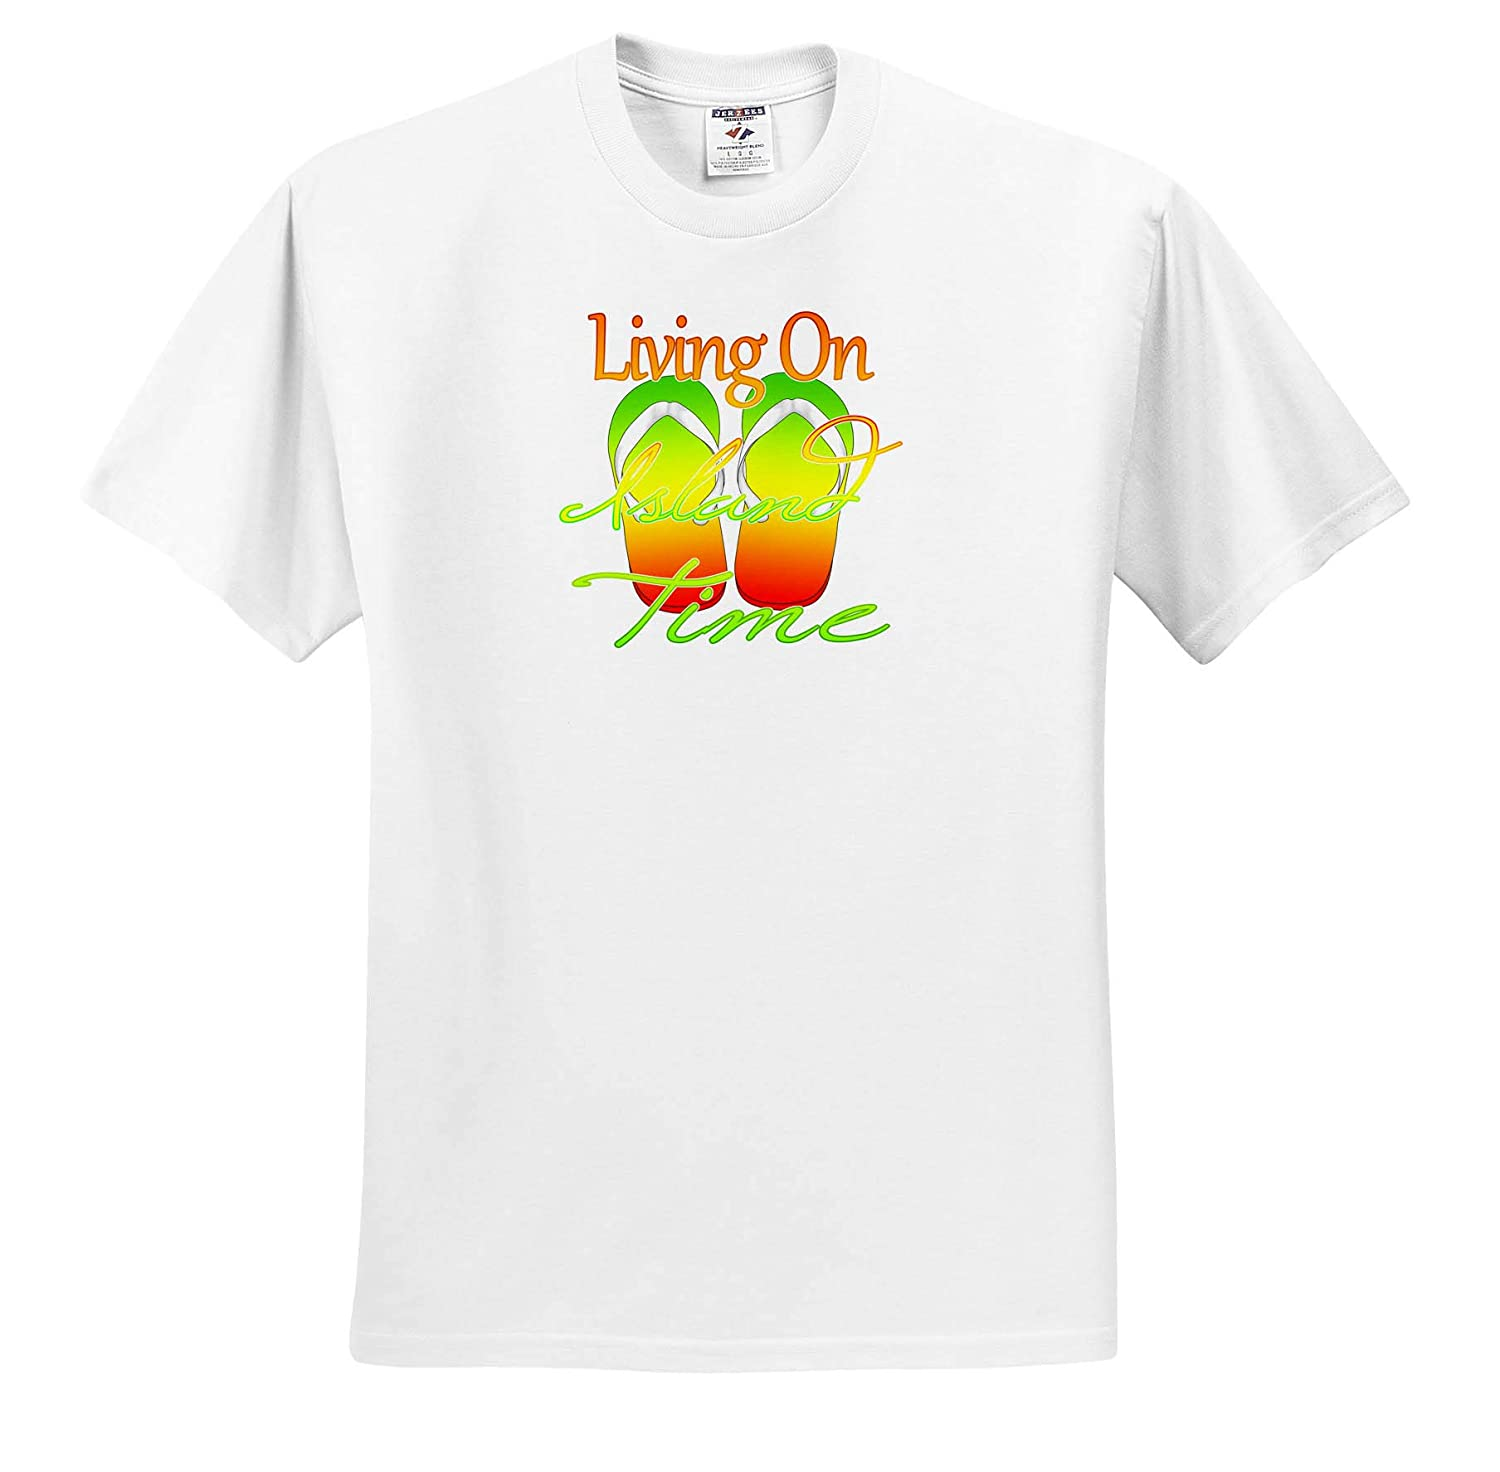 Islands Living On Island Time and Caribbean Island Color flip Flops 3dRose Macdonald Creative Studios - T-Shirts